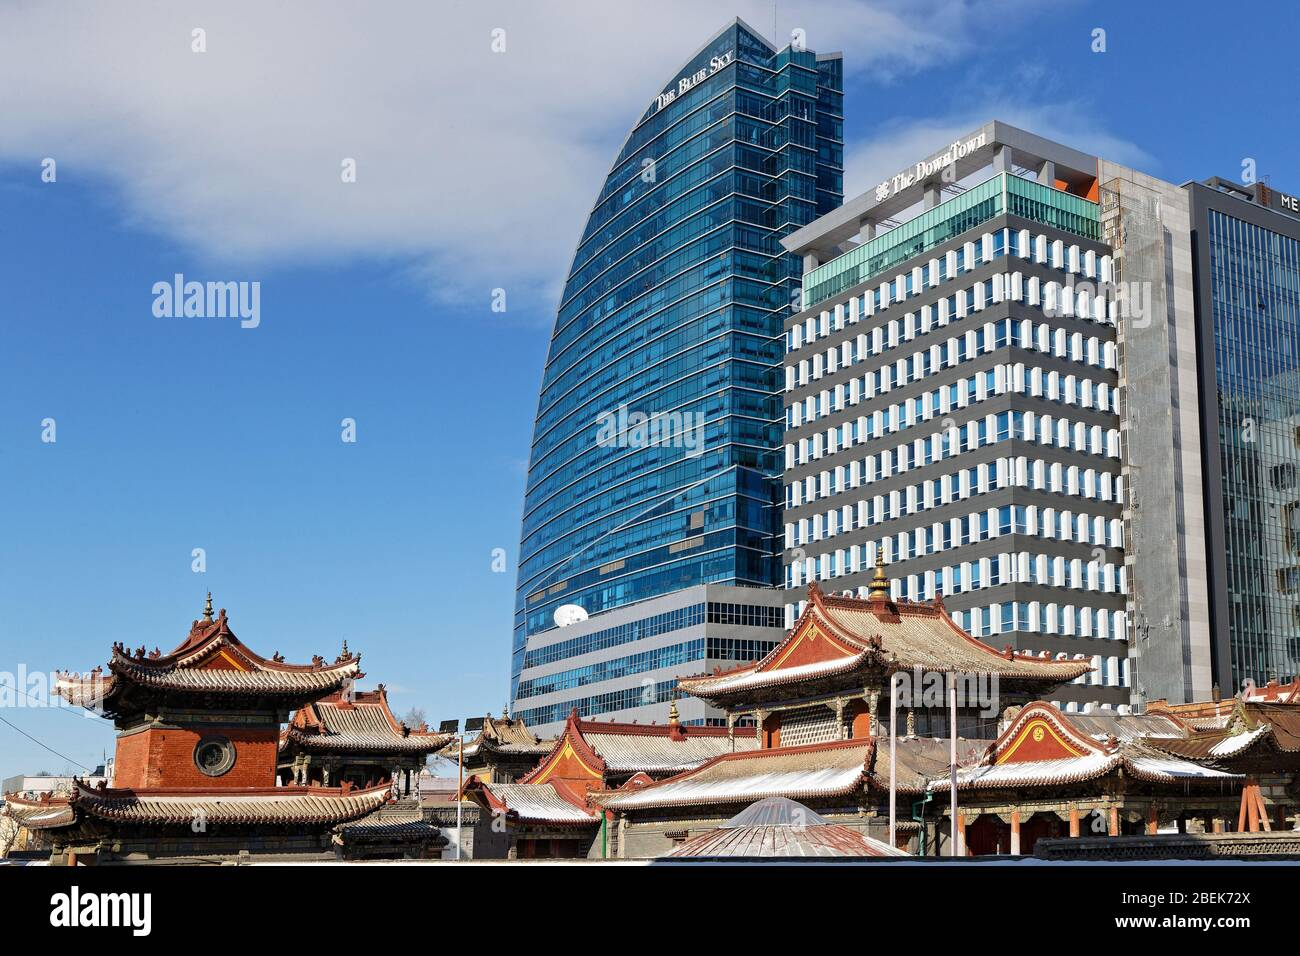 ULAANBAATAR, MONGOLIA, March 9, 2020 : Traditional monastery in the city center contrasts with huge modern buildings. Stock Photo